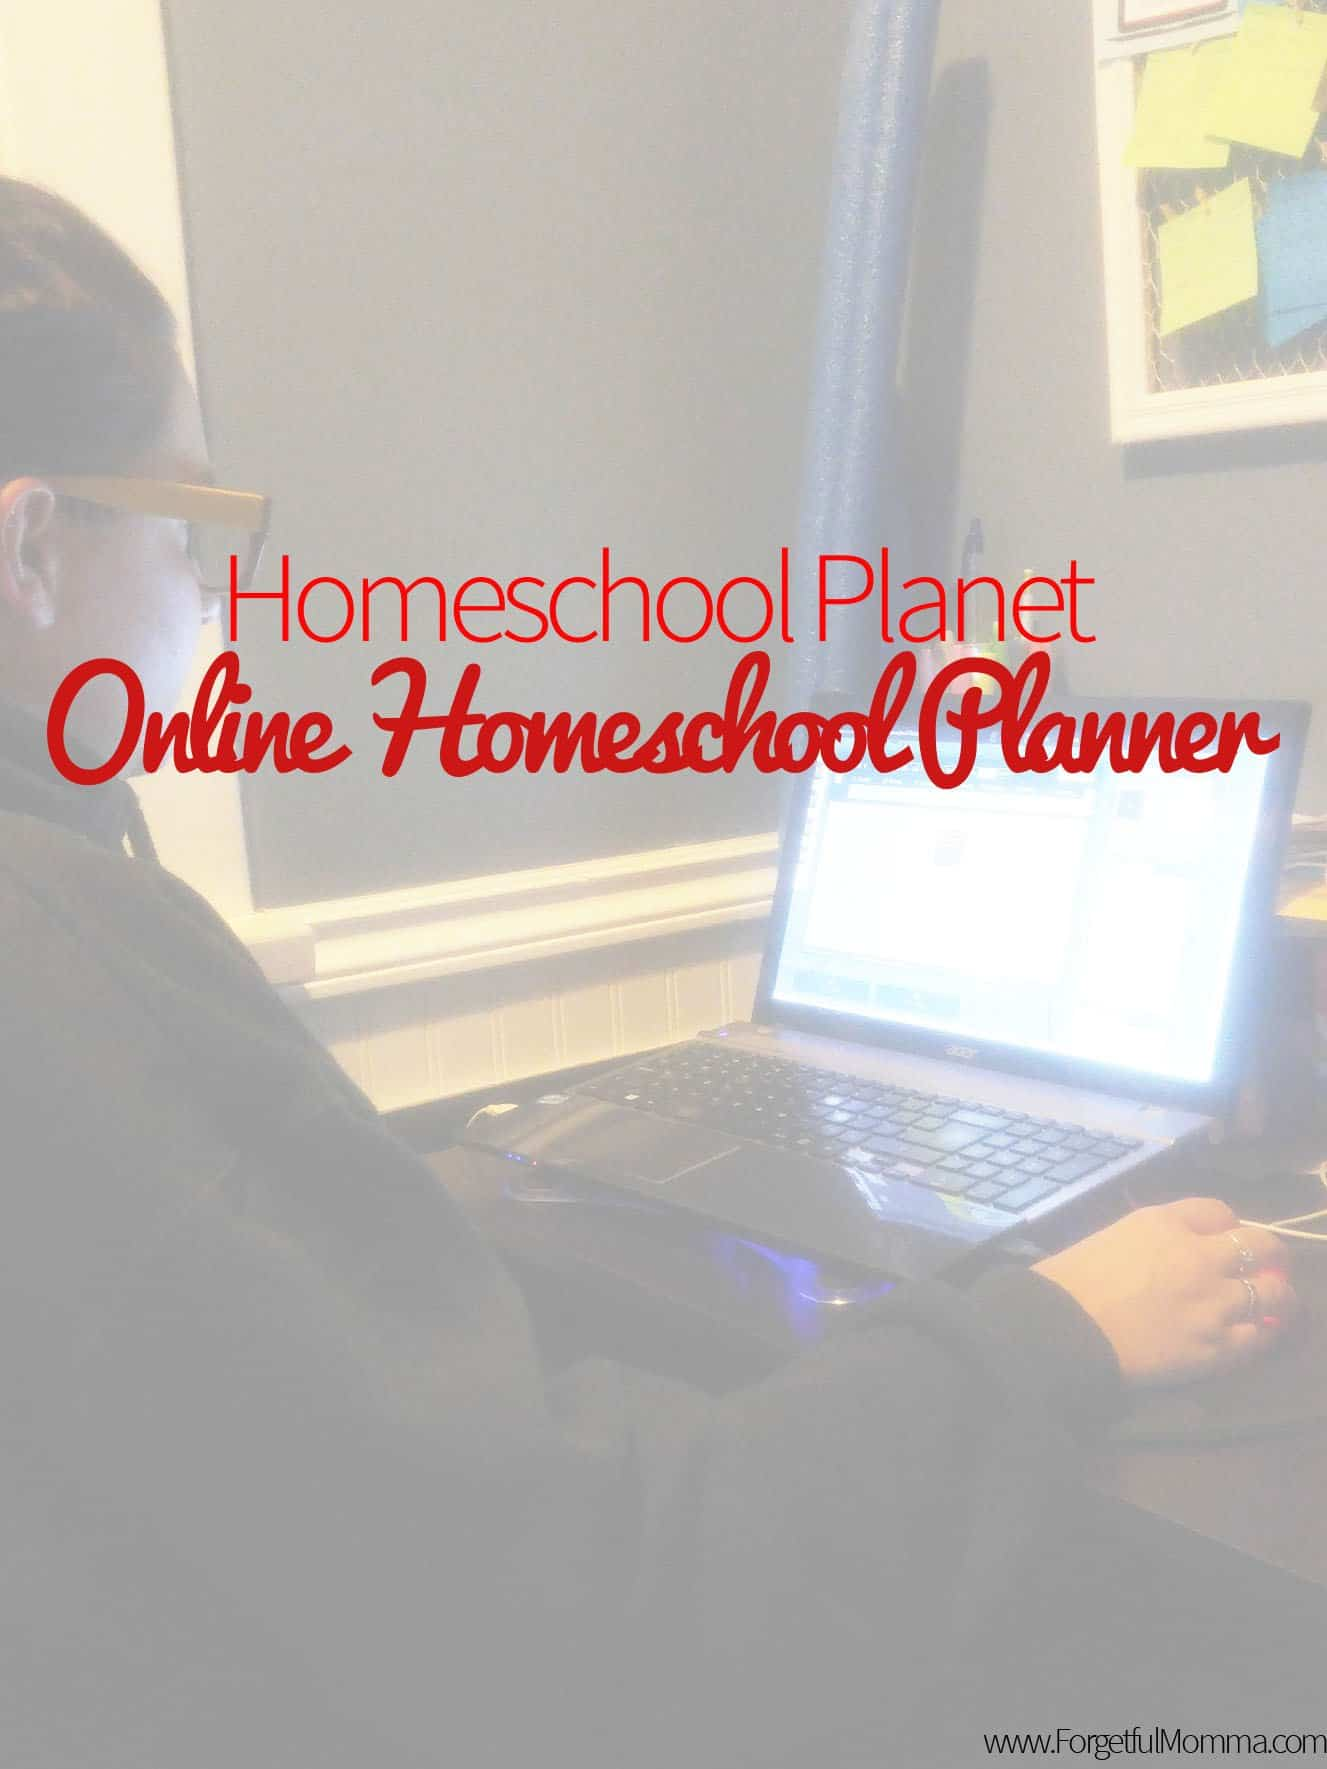 Homeschool Planet - Online Homeschool Planner